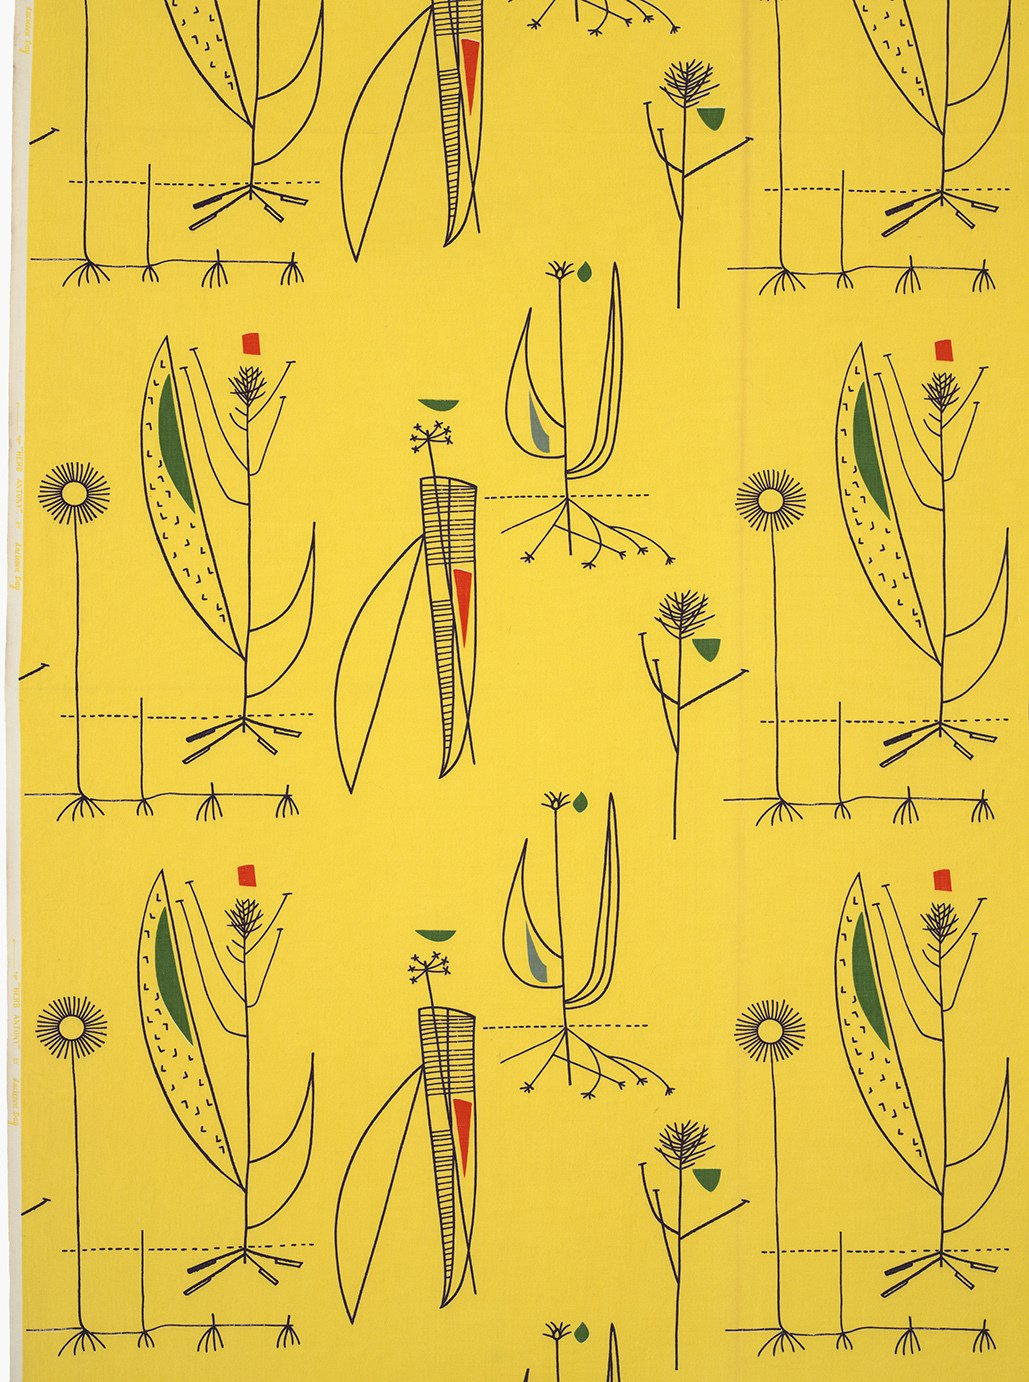 Day's Herb Antony fabric for Heal's (1956) is an example of her bright, optimistic prints that were an antidote to the austerity of World War II and were widely embraced as a fresh alternative to traditional floral fabrics. Image courtesy of The Robin & Lucienne Day Foundation. Collection of Jill A. Wiltse and H. Kirk Brown III, Denver.  Photo 4 of 5 in All in a Day's Work